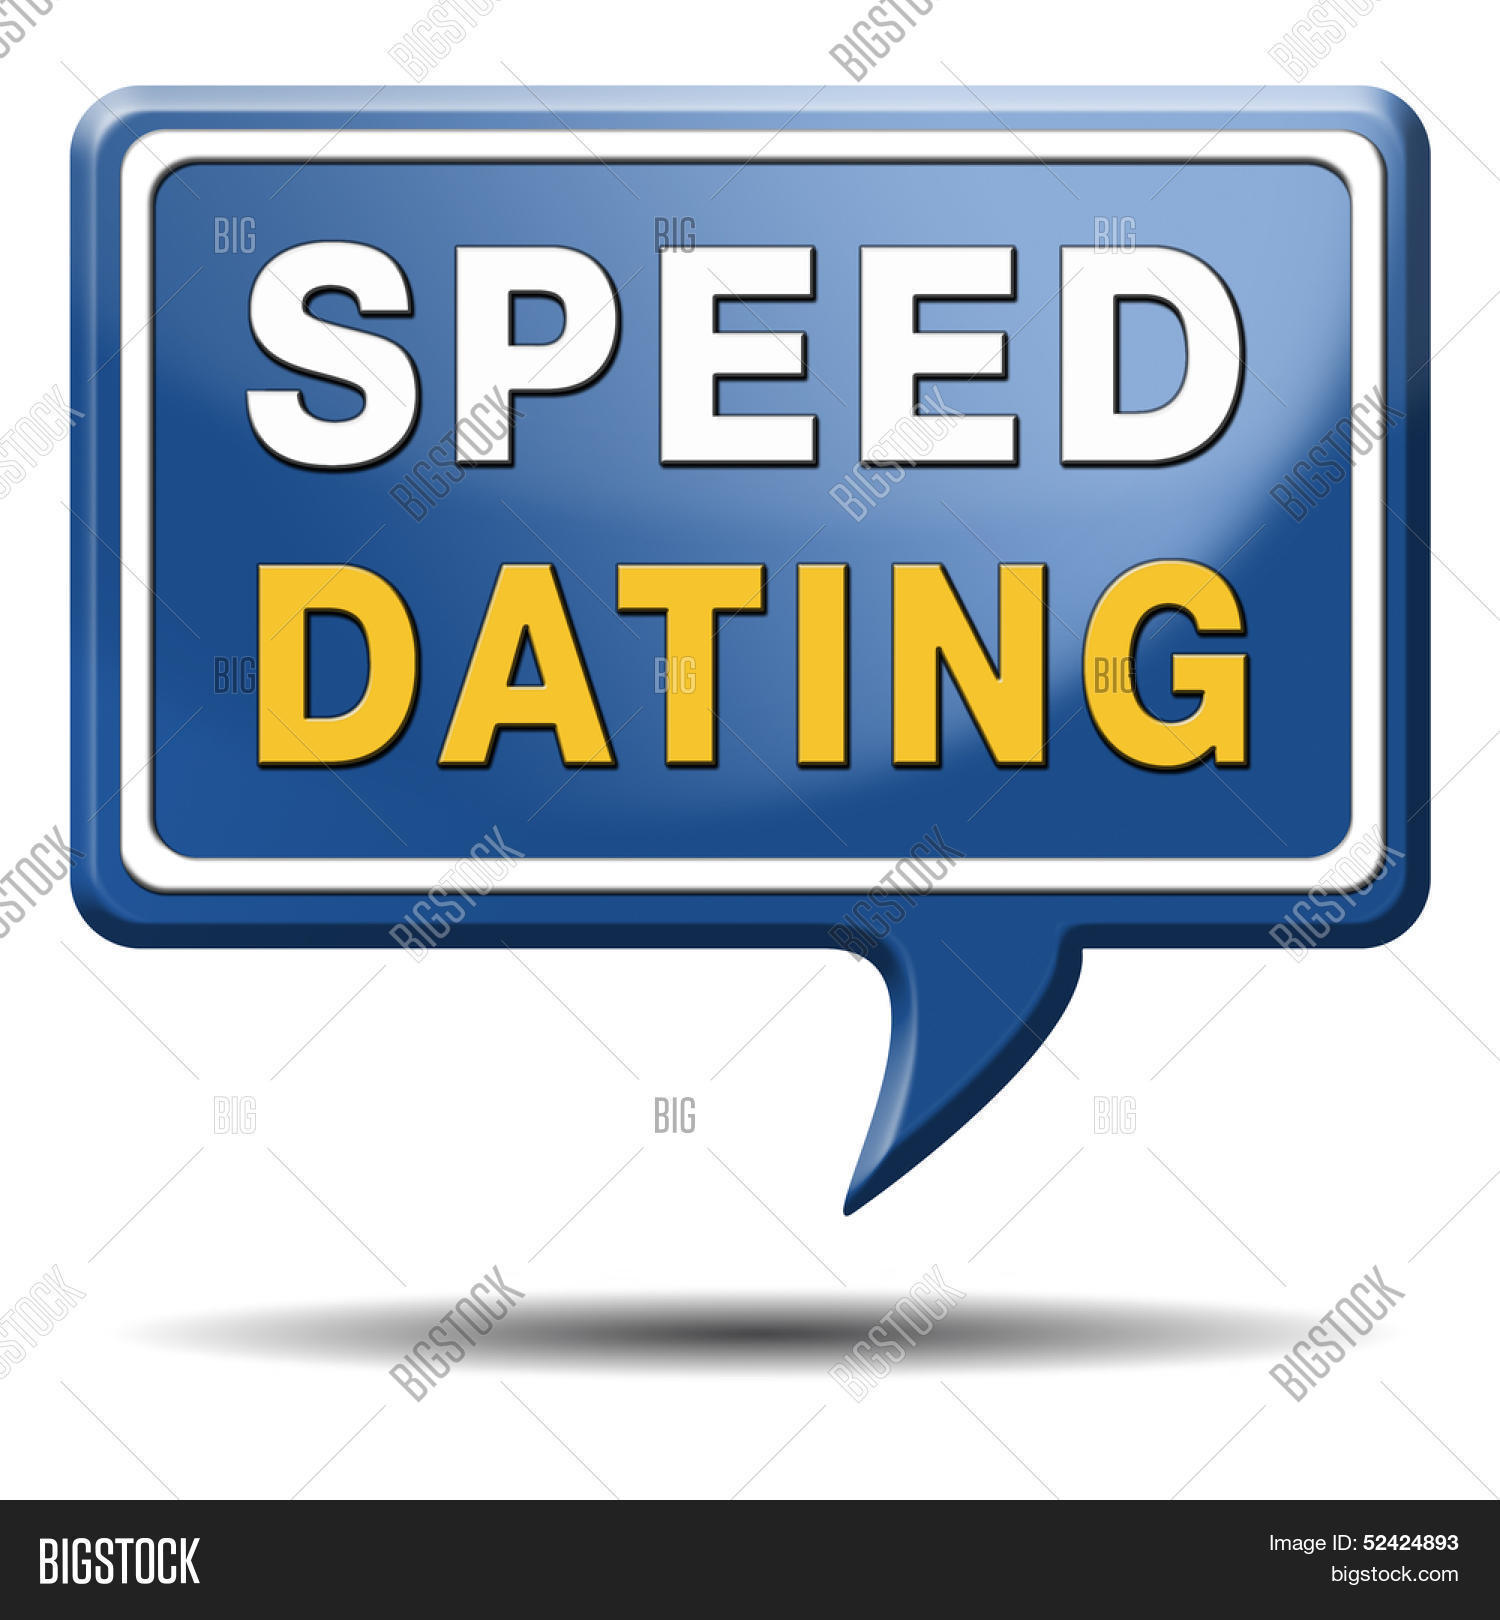 Site speed dating